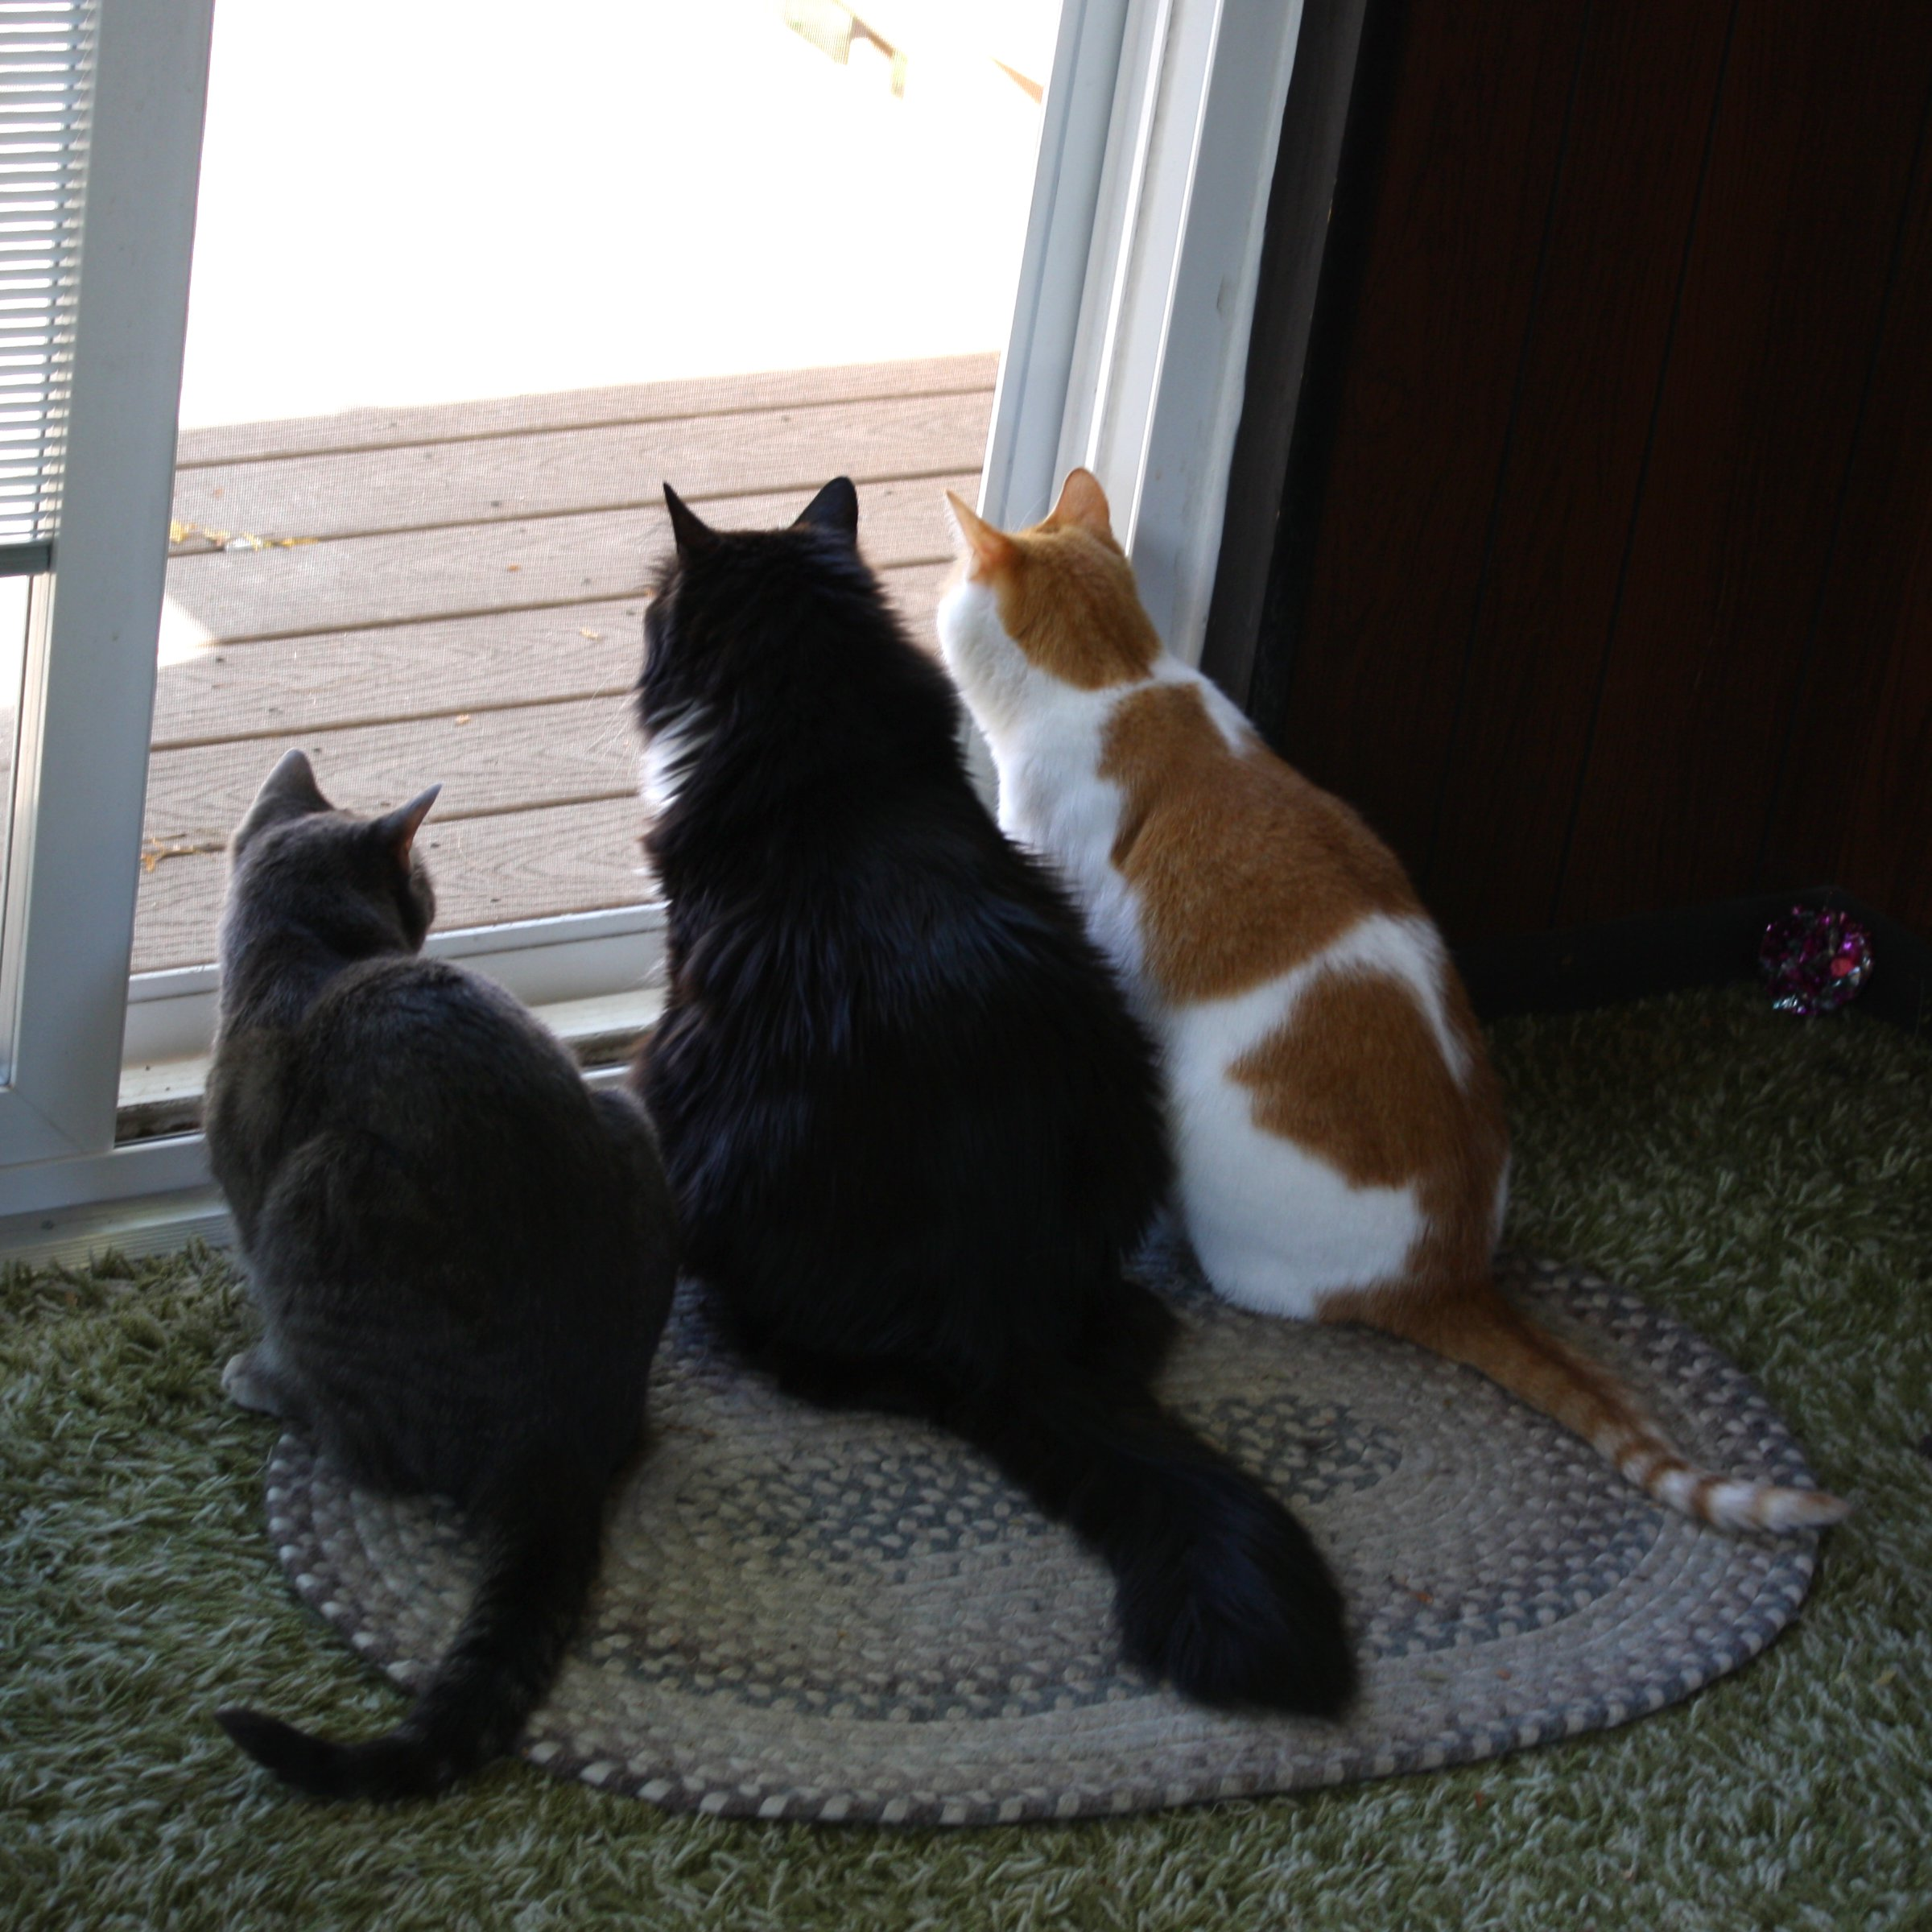 Three cats looking out back door picture free photograph The three cats